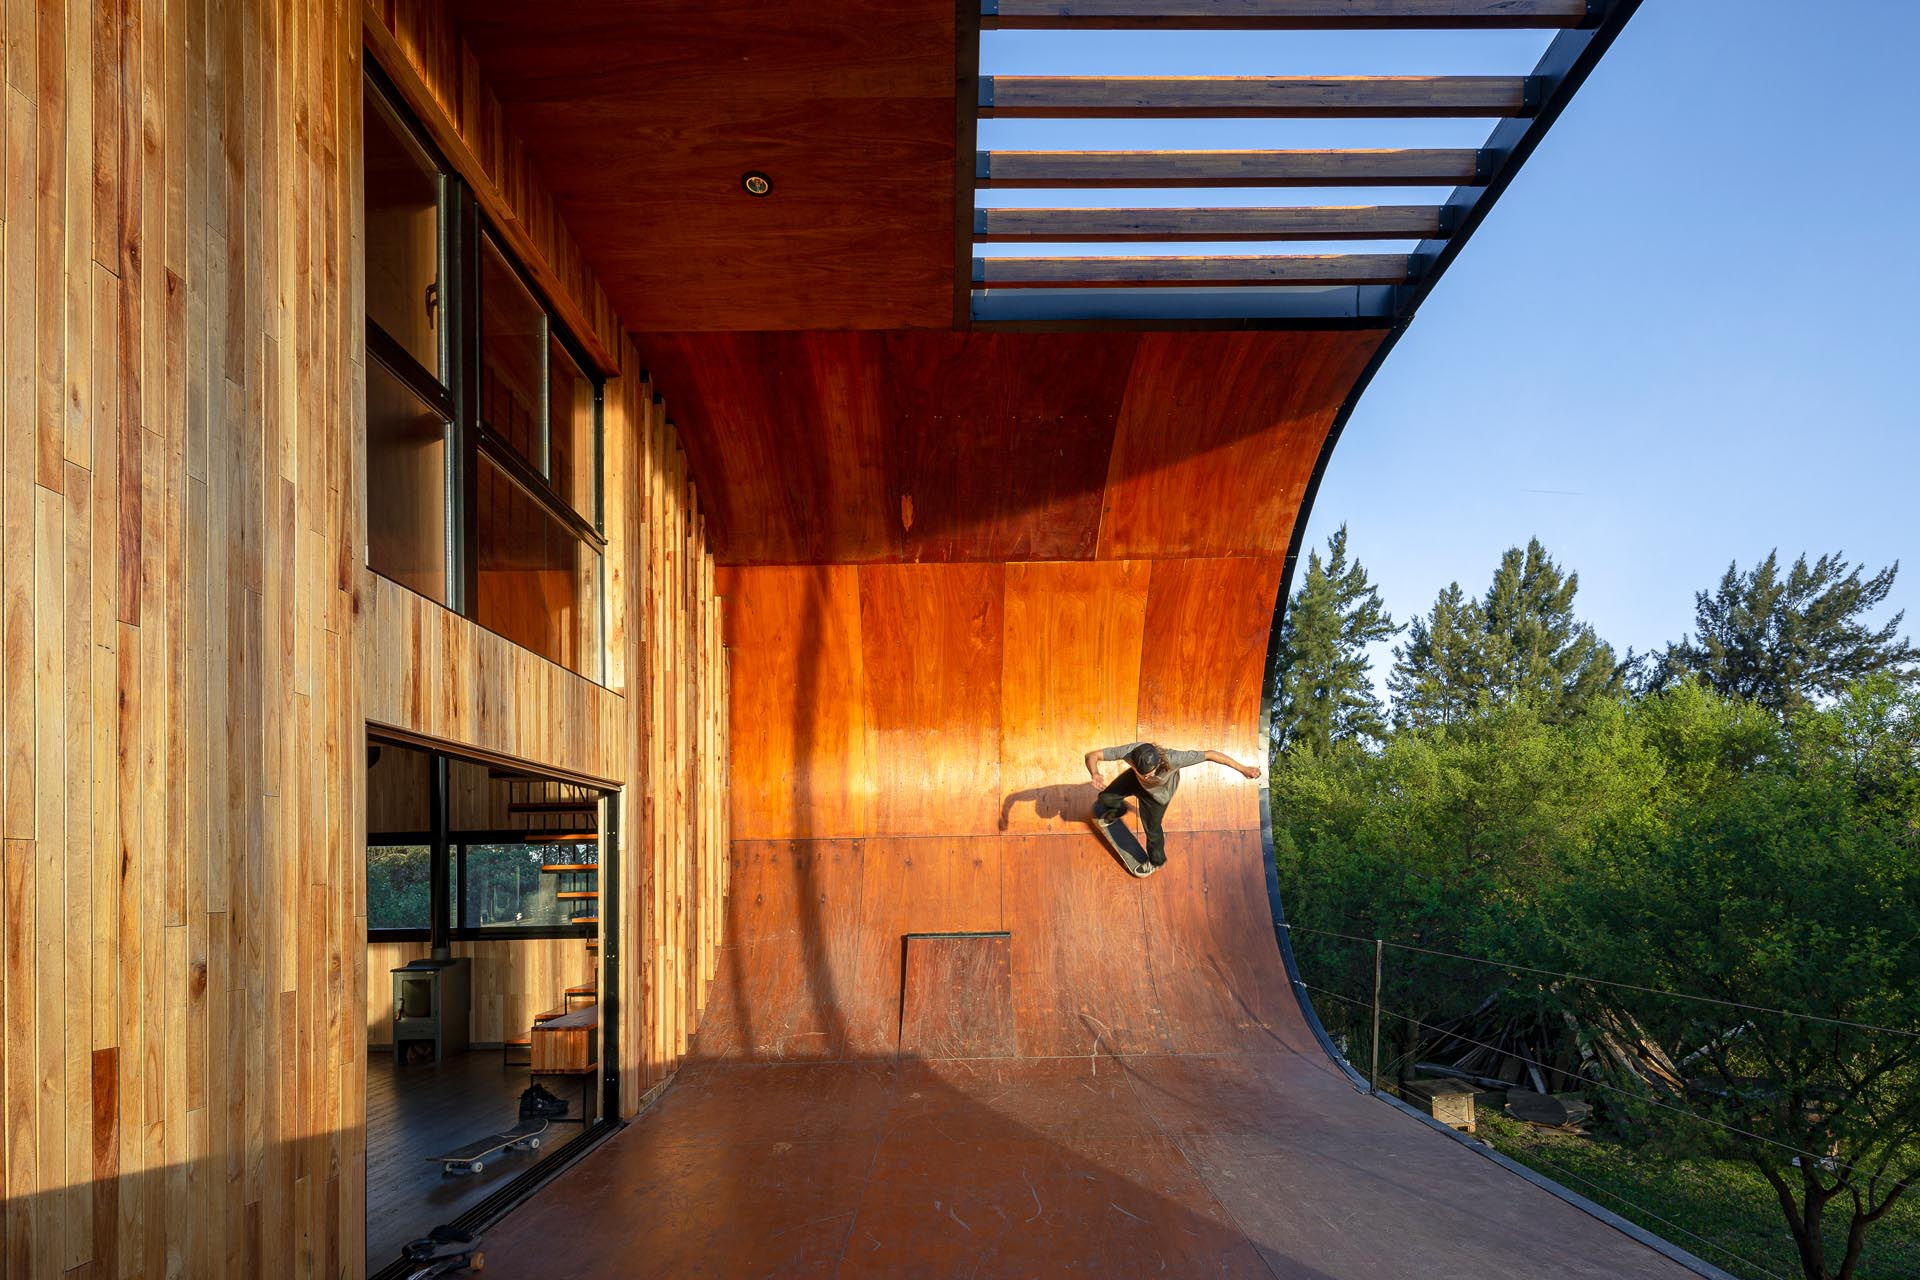 A small and modern house with a built-in skateboard ramp.